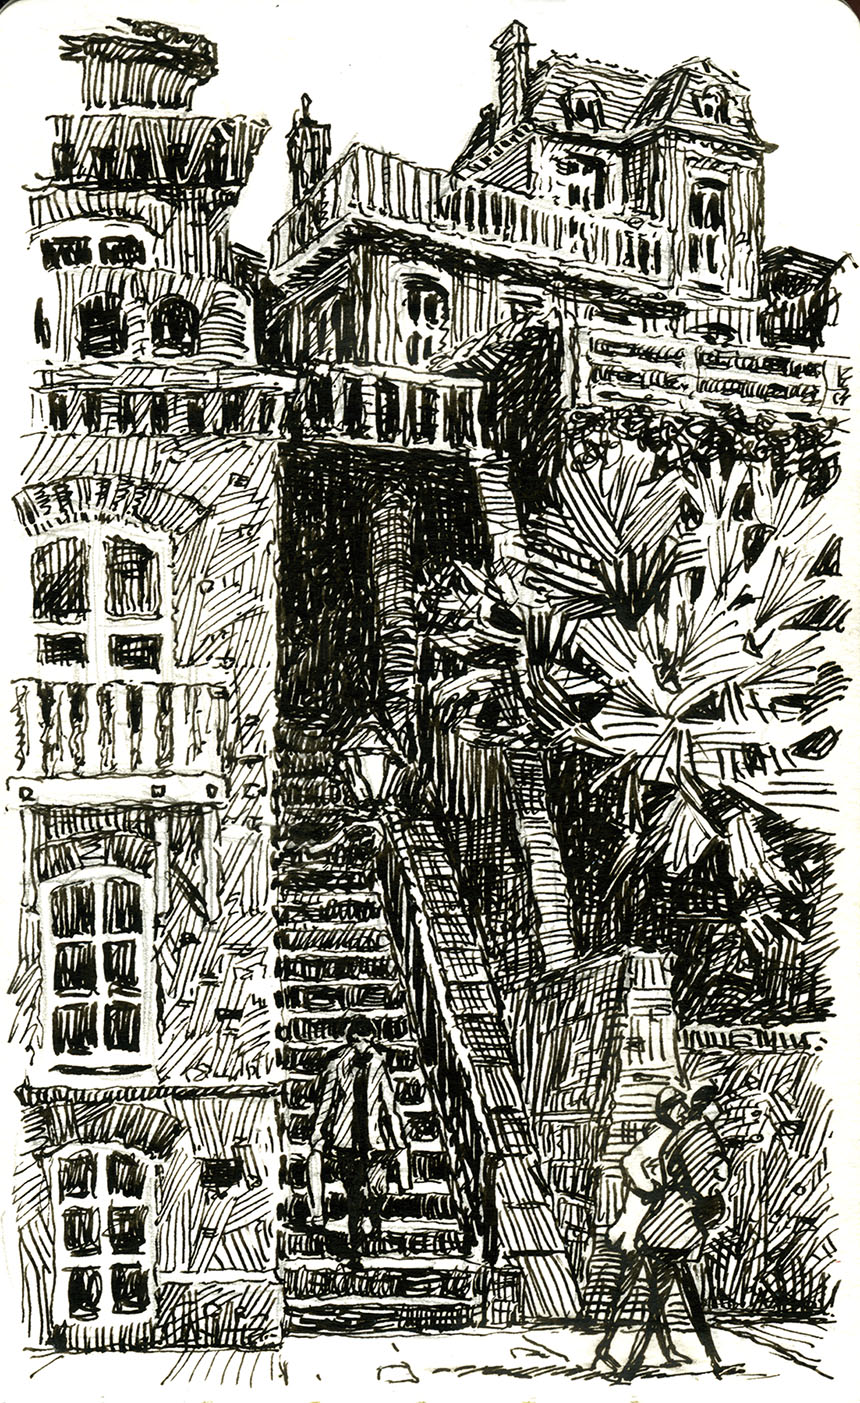 Villerville, steps, drawing, pen and ink, france